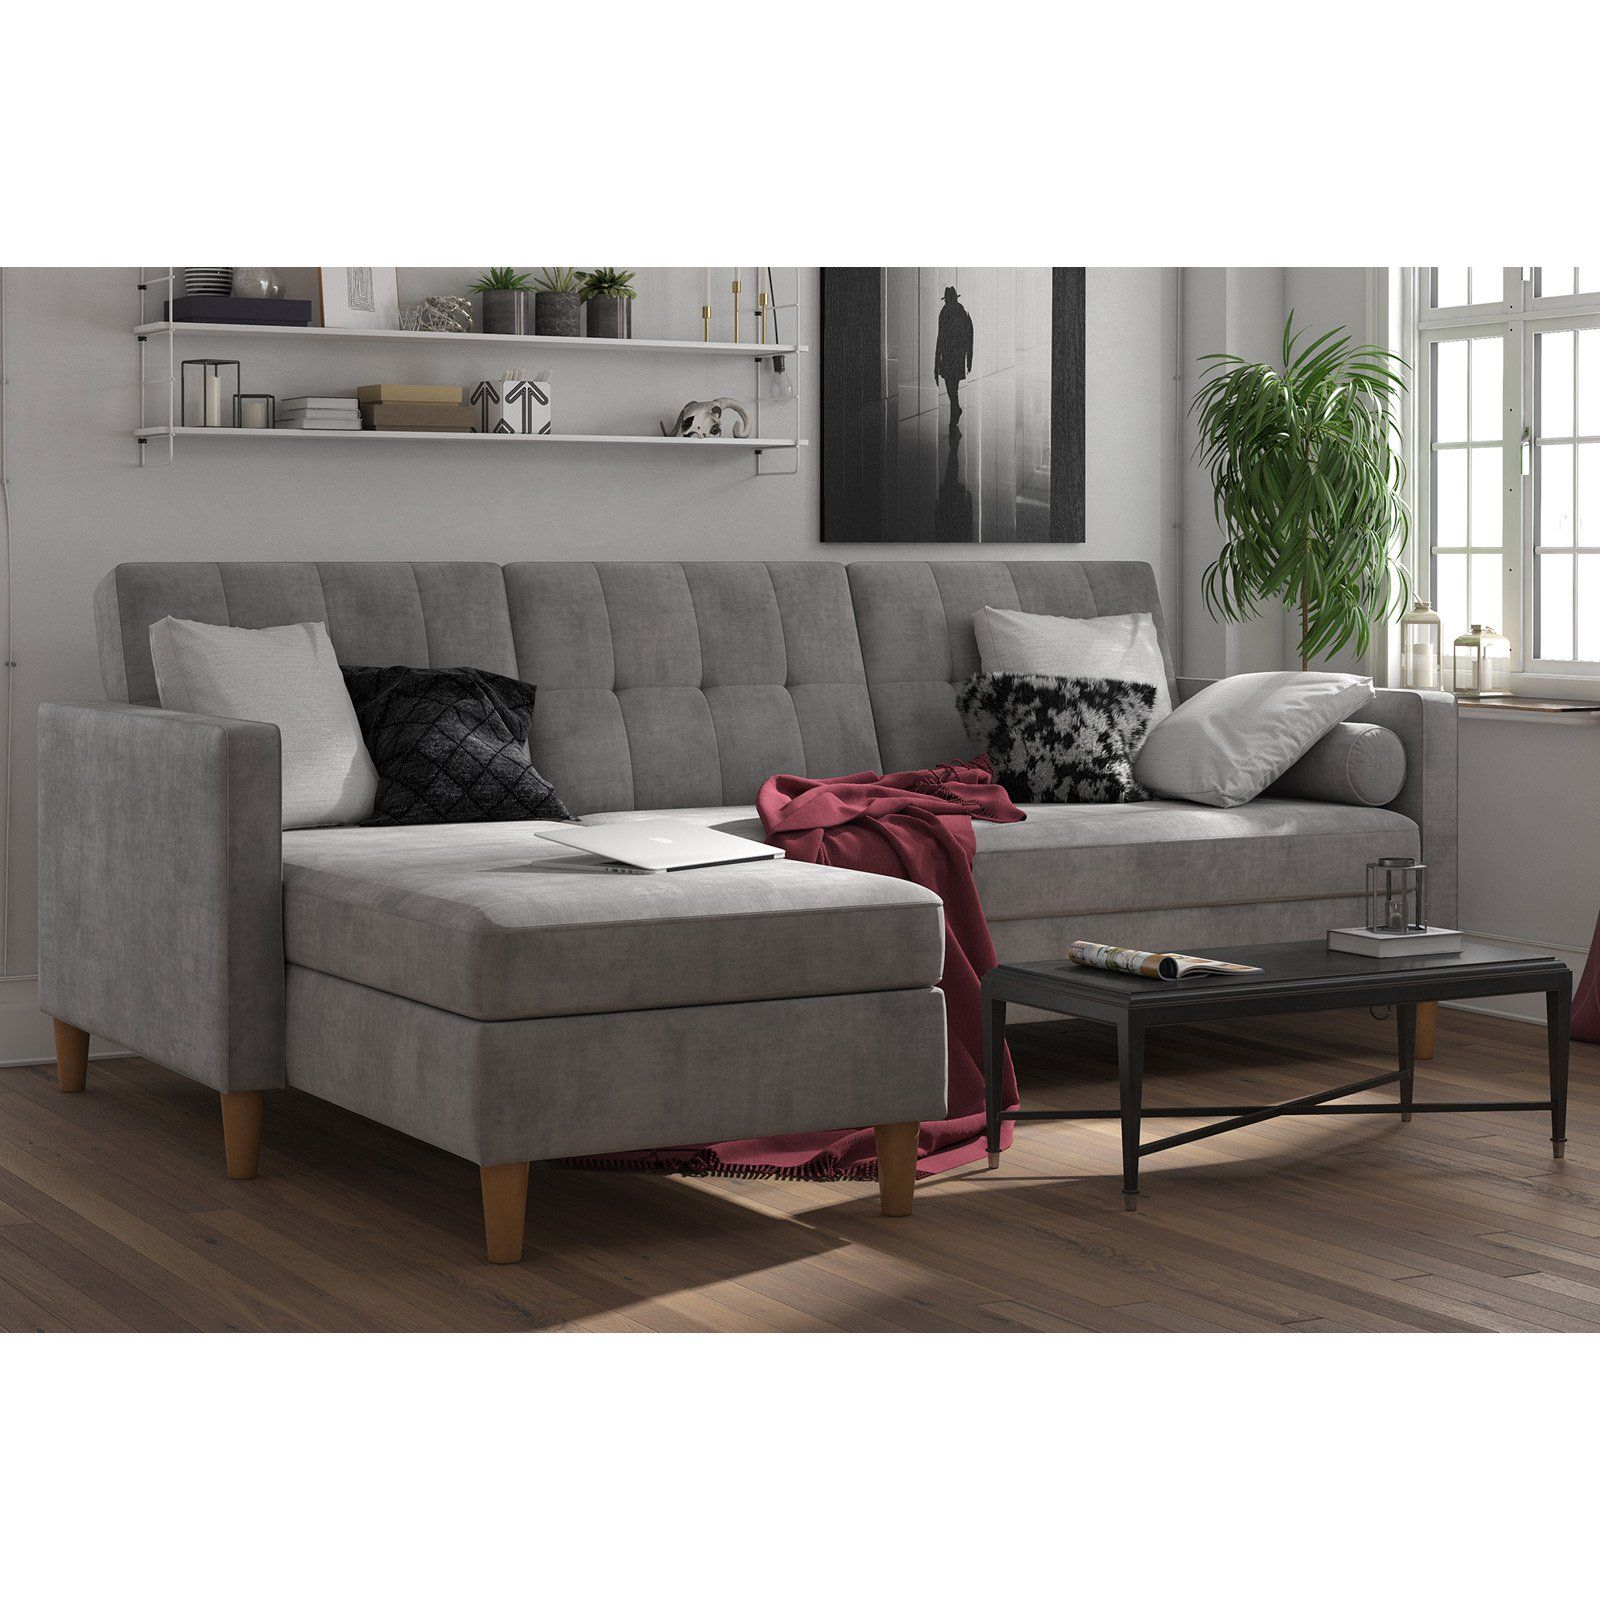 Dhp Hartford Storage Sectional Futon With Chaise Gray In